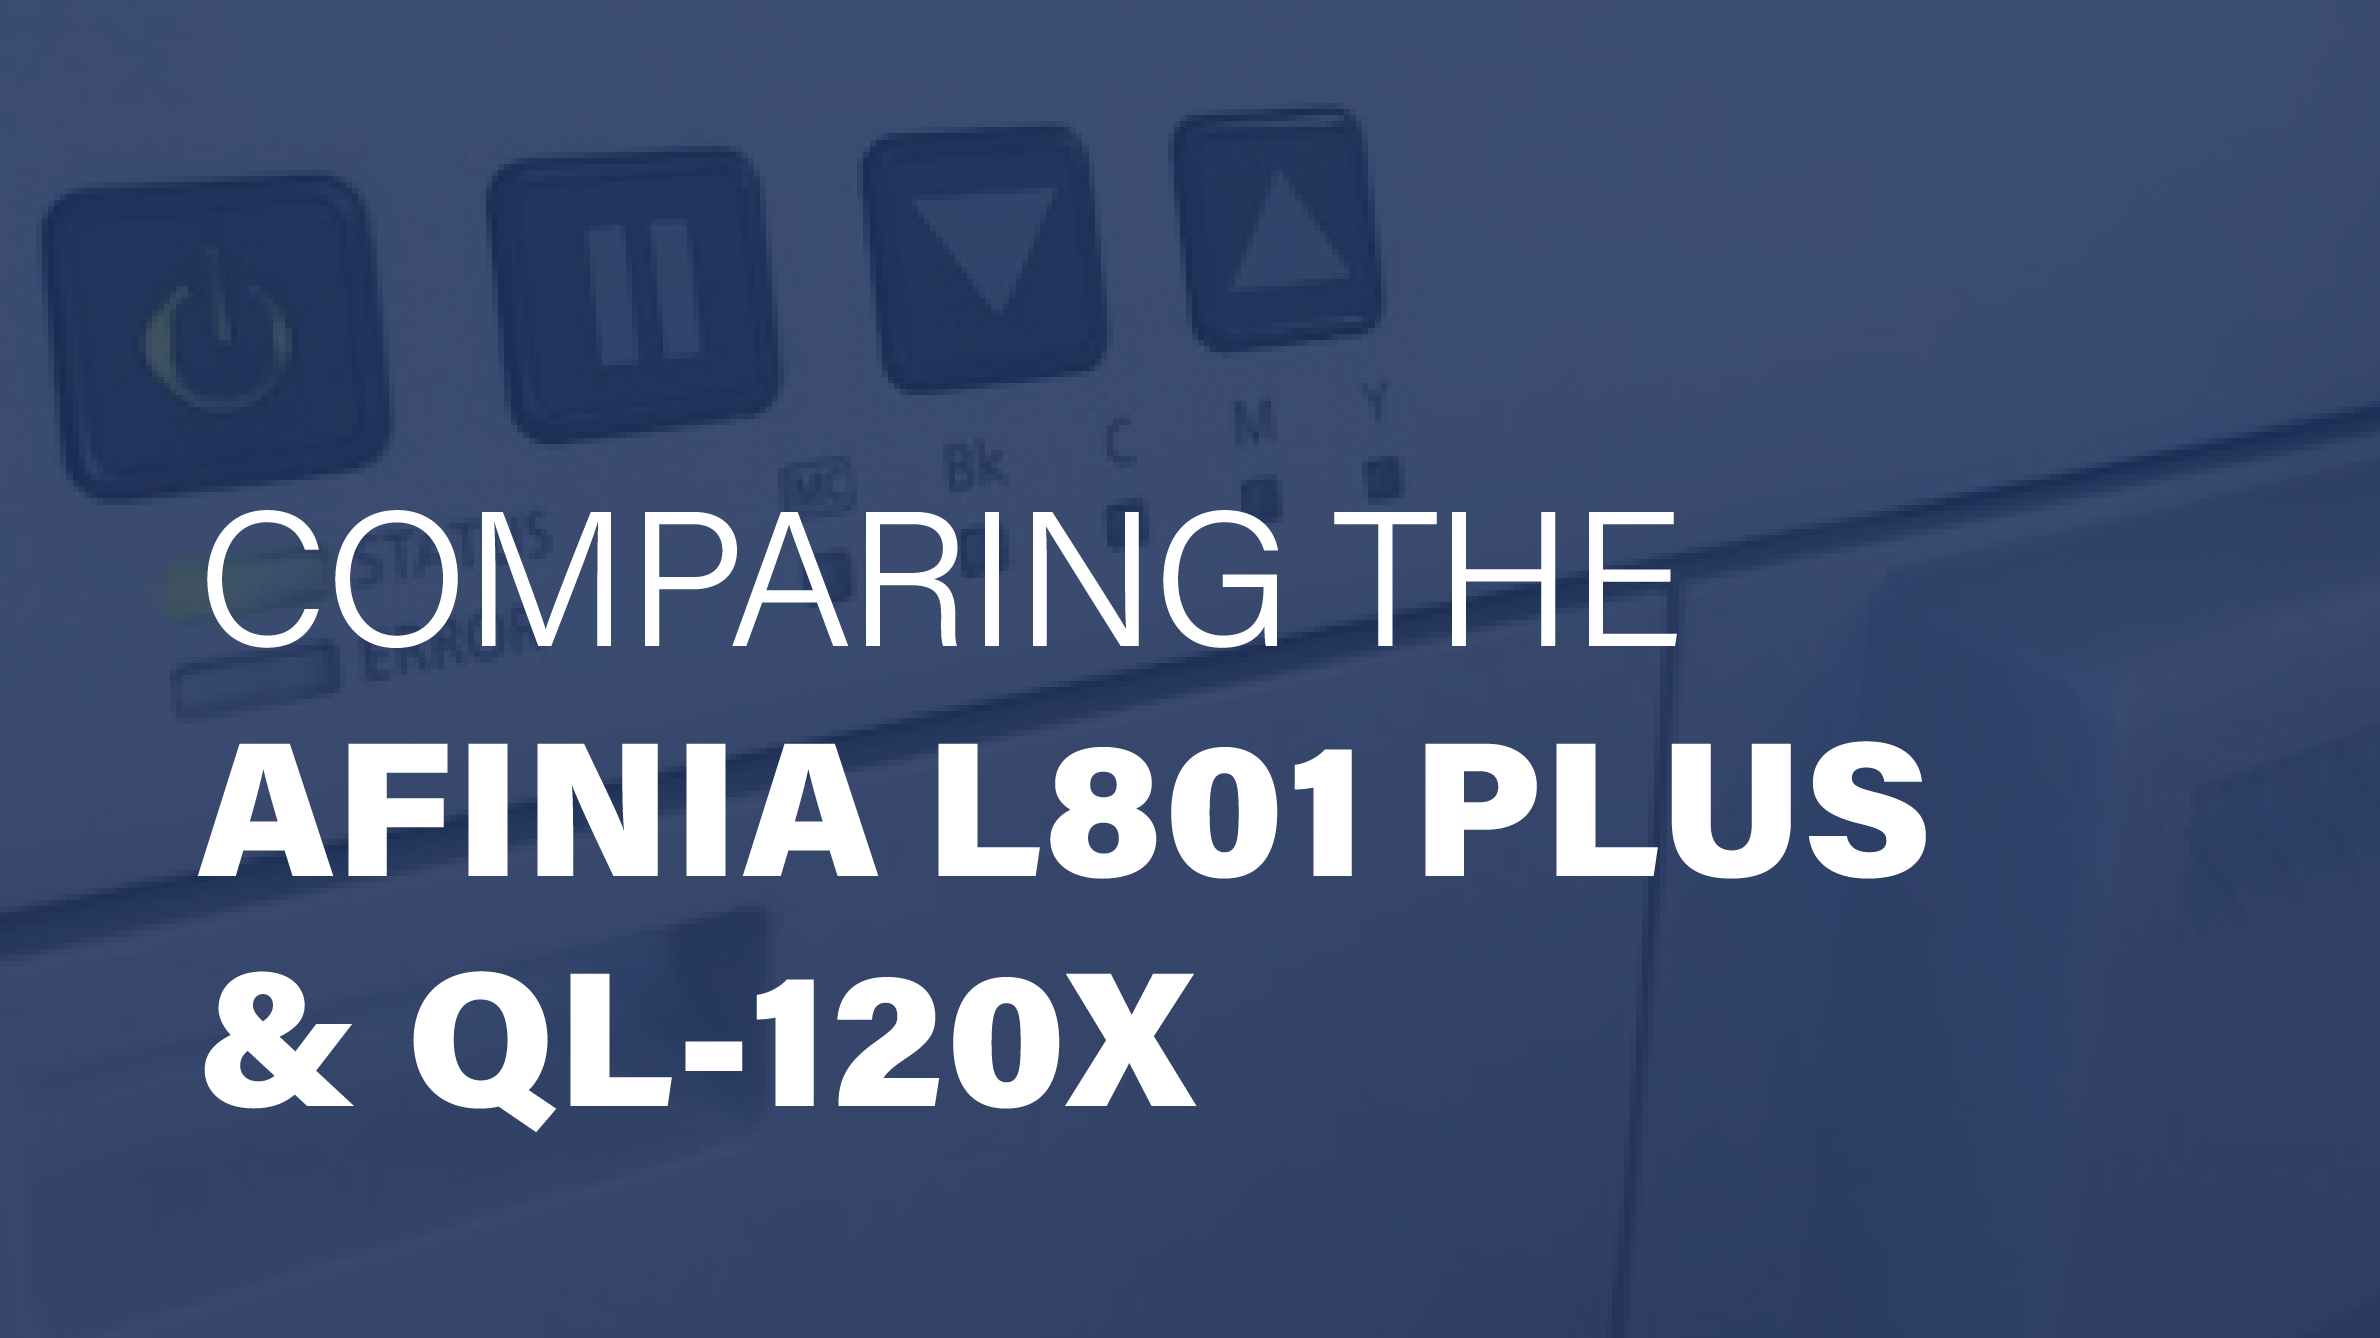 Comparing the QL-120 and T2-C